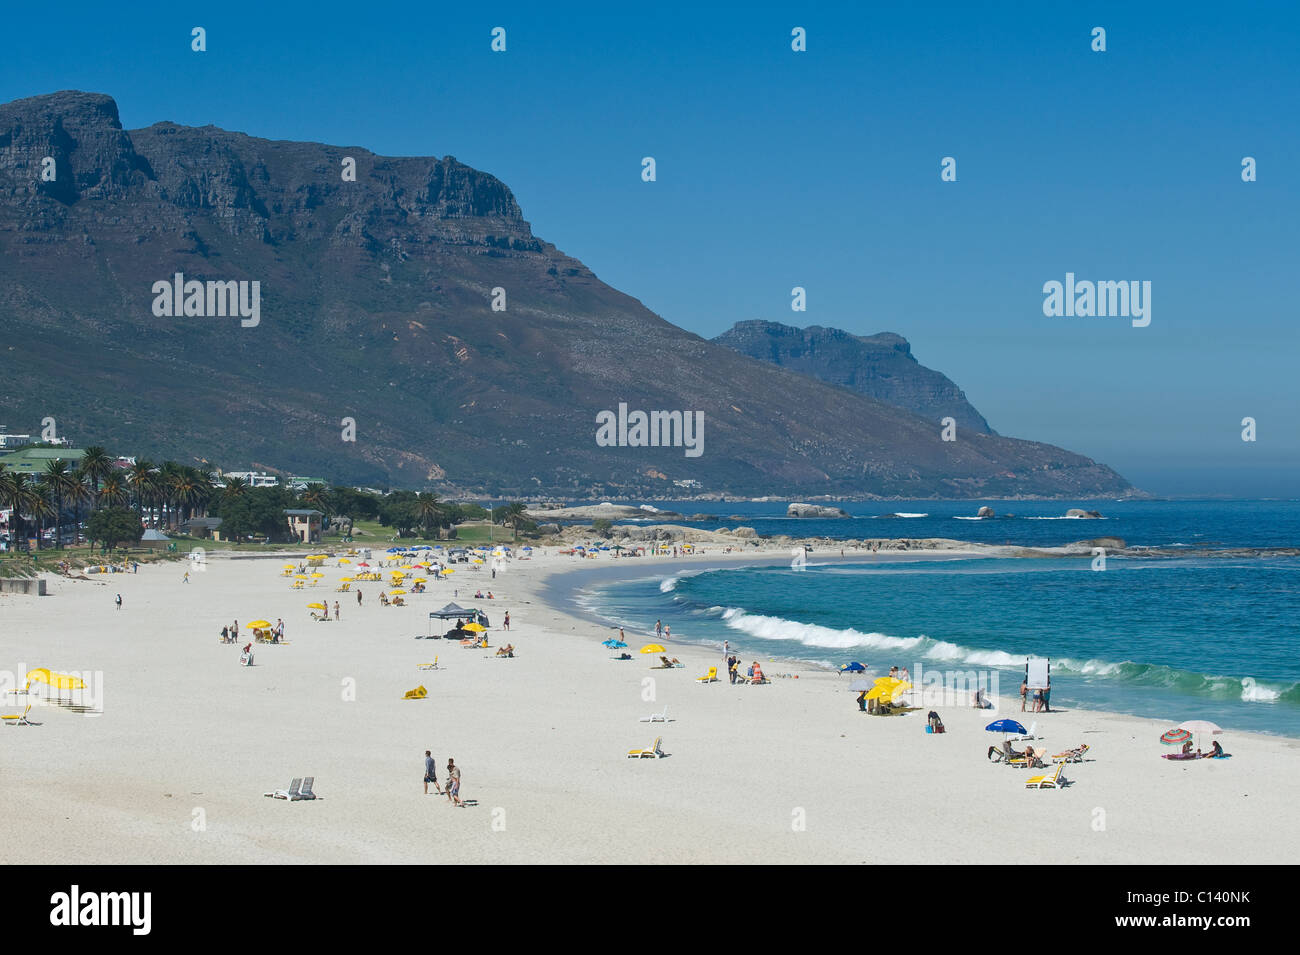 Beach at Camps Bay Cape Town South Africa - Stock Image